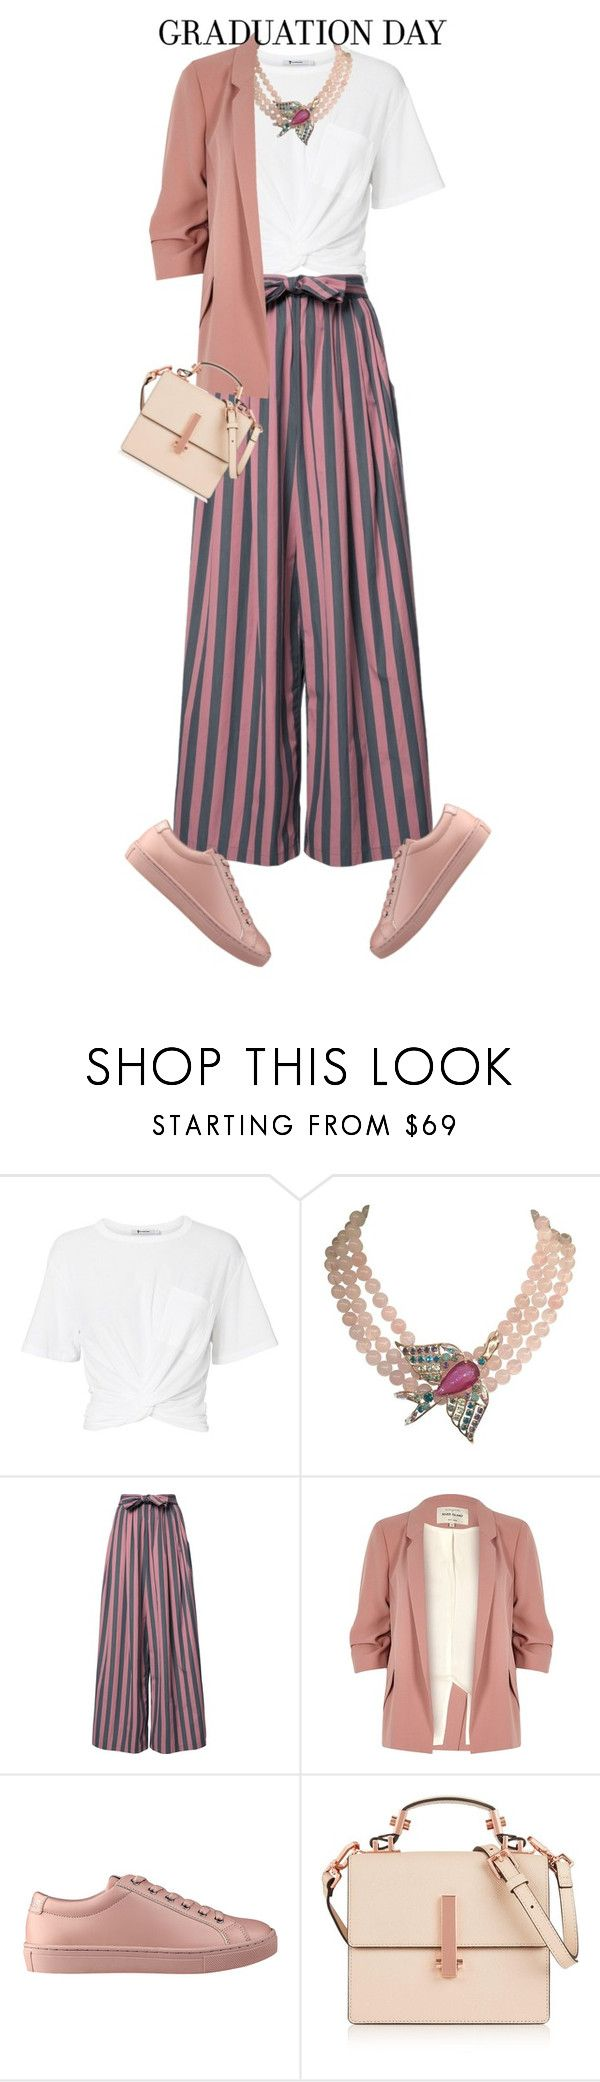 """""""graduation"""" by live-ska on Polyvore featuring T By Alexander Wang, Philippe Ferrandis, Tome, River Island, GUESS, Kendall + Kylie and Graduation"""